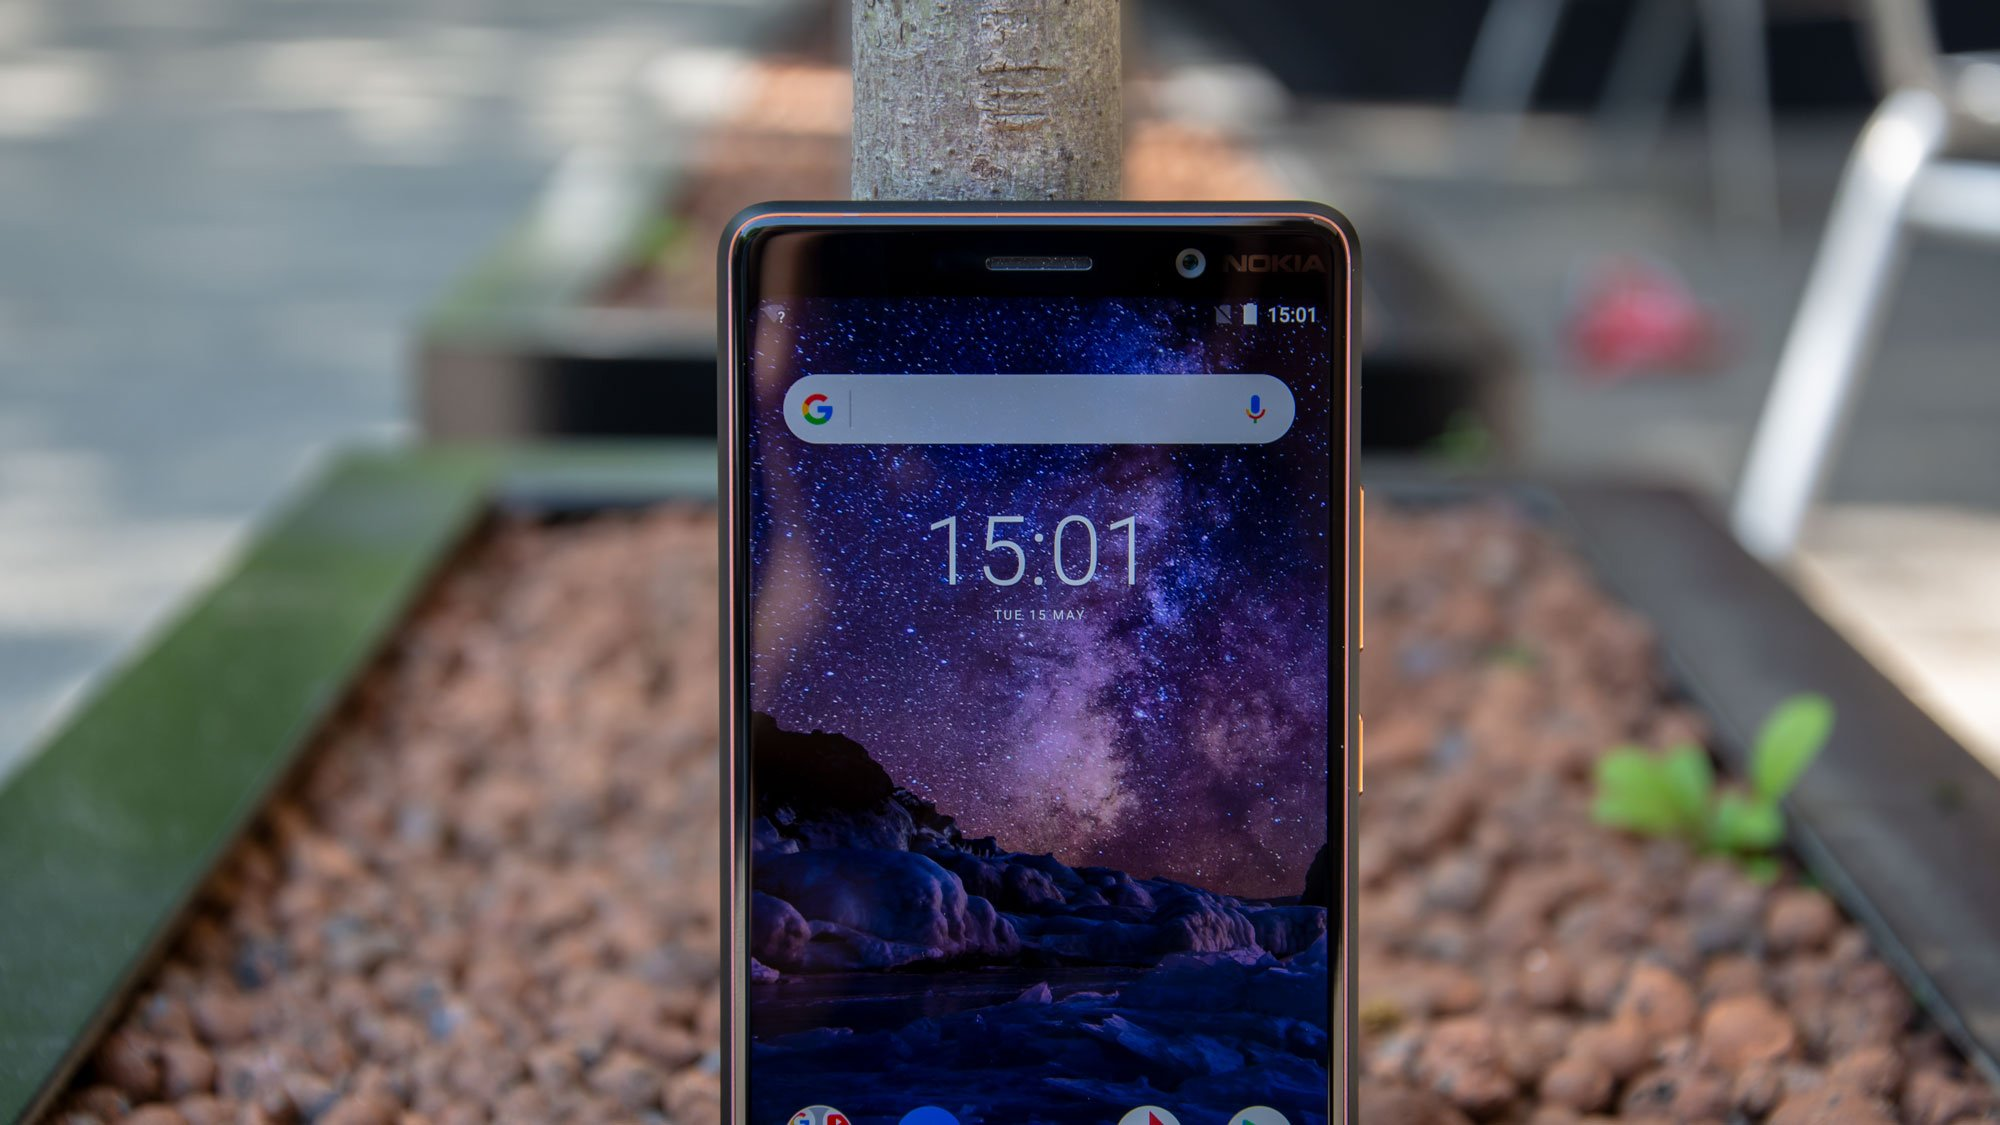 Nokia 7 Plus Review A Very Likeable Big Screen Phone At A